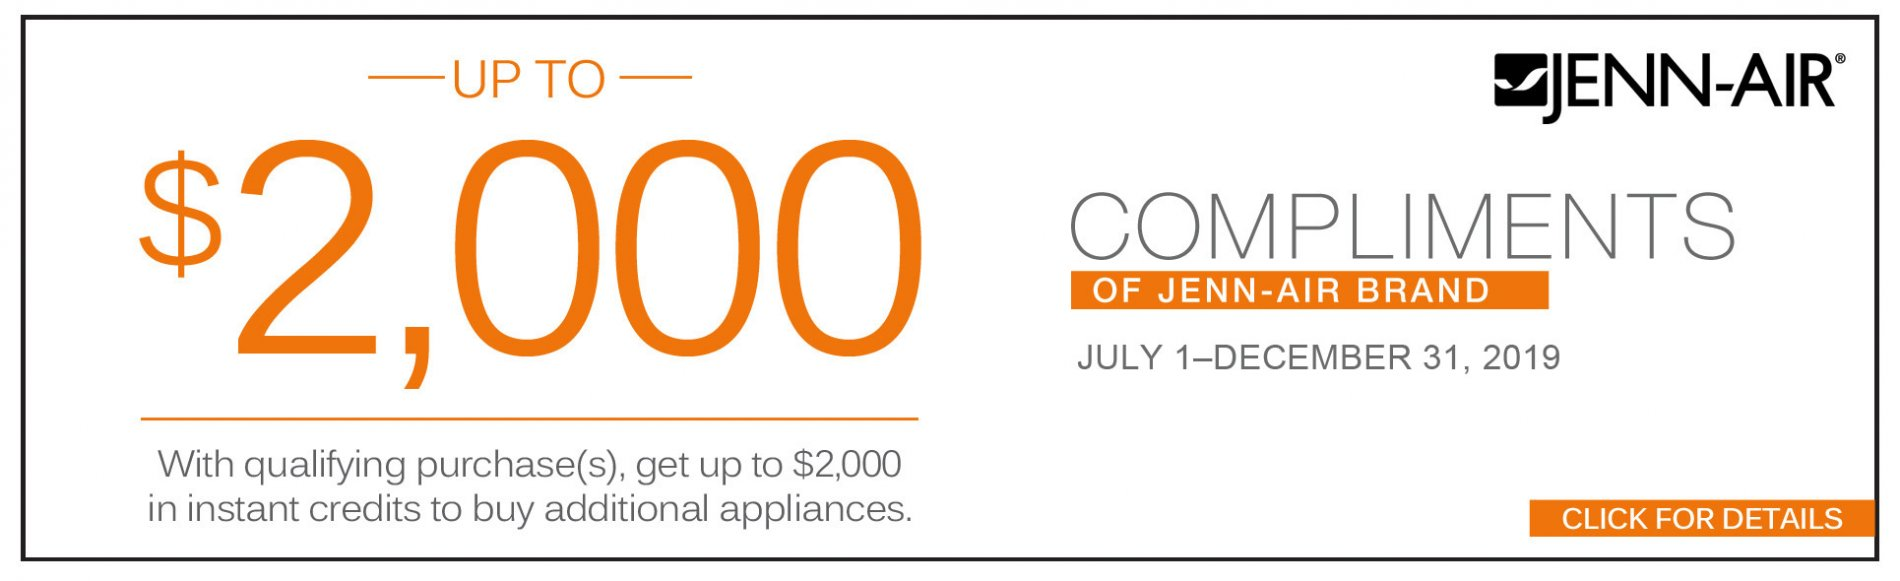 Jenn-Air up to $2000 compliments of Jenn-Air